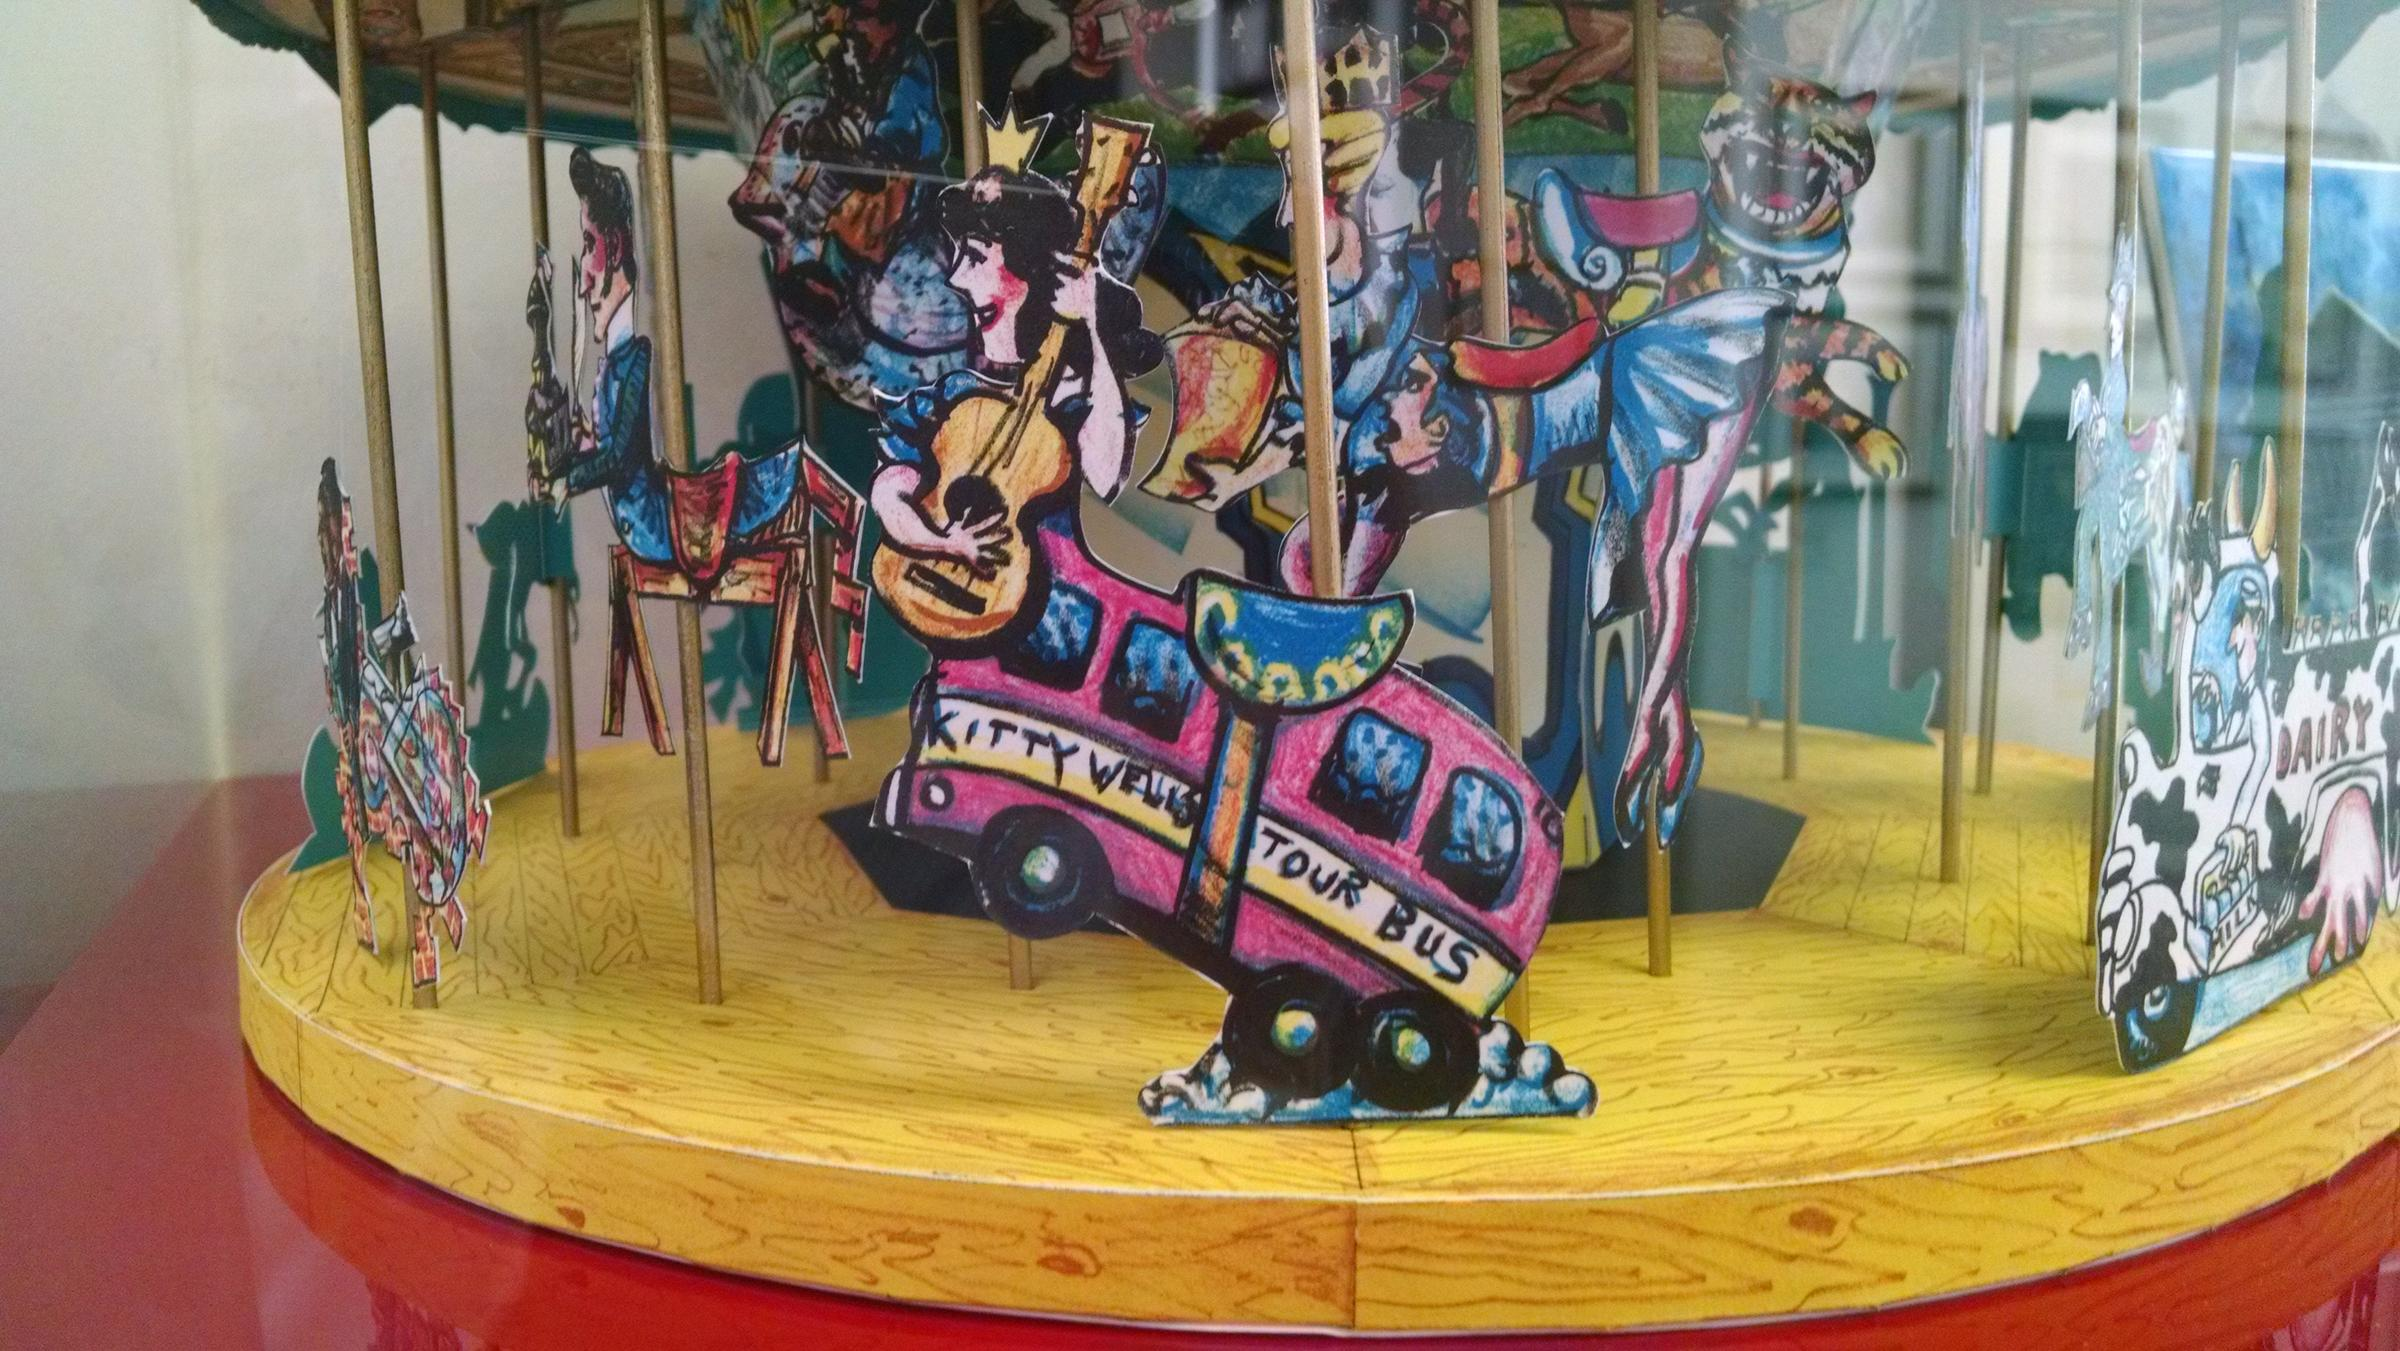 How Wells Body Would Have Appeared On The Carousel